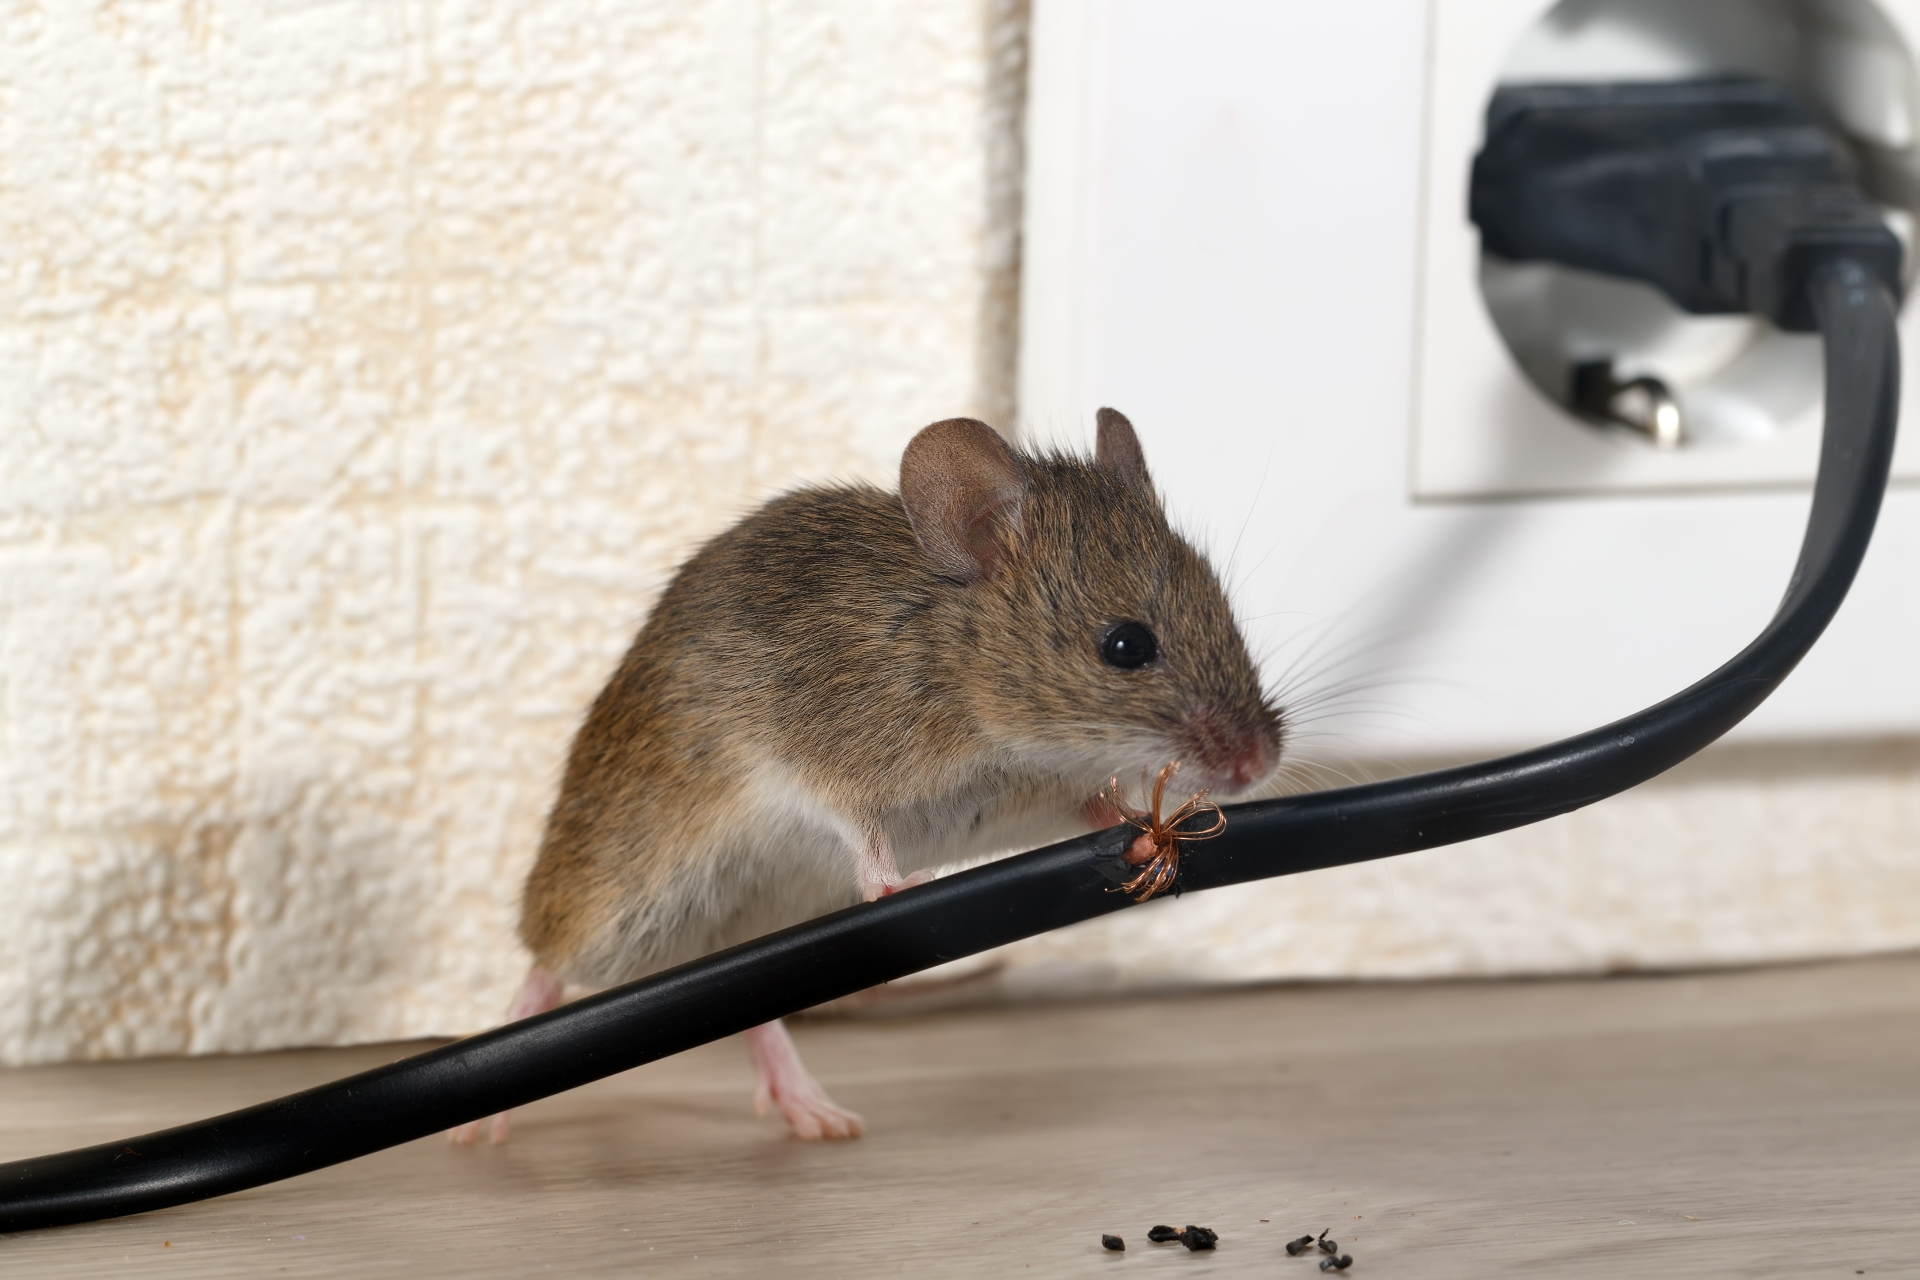 Mice Infestation, Pest Control in Heston, Osterley, TW5. Call Now 020 8166 9746